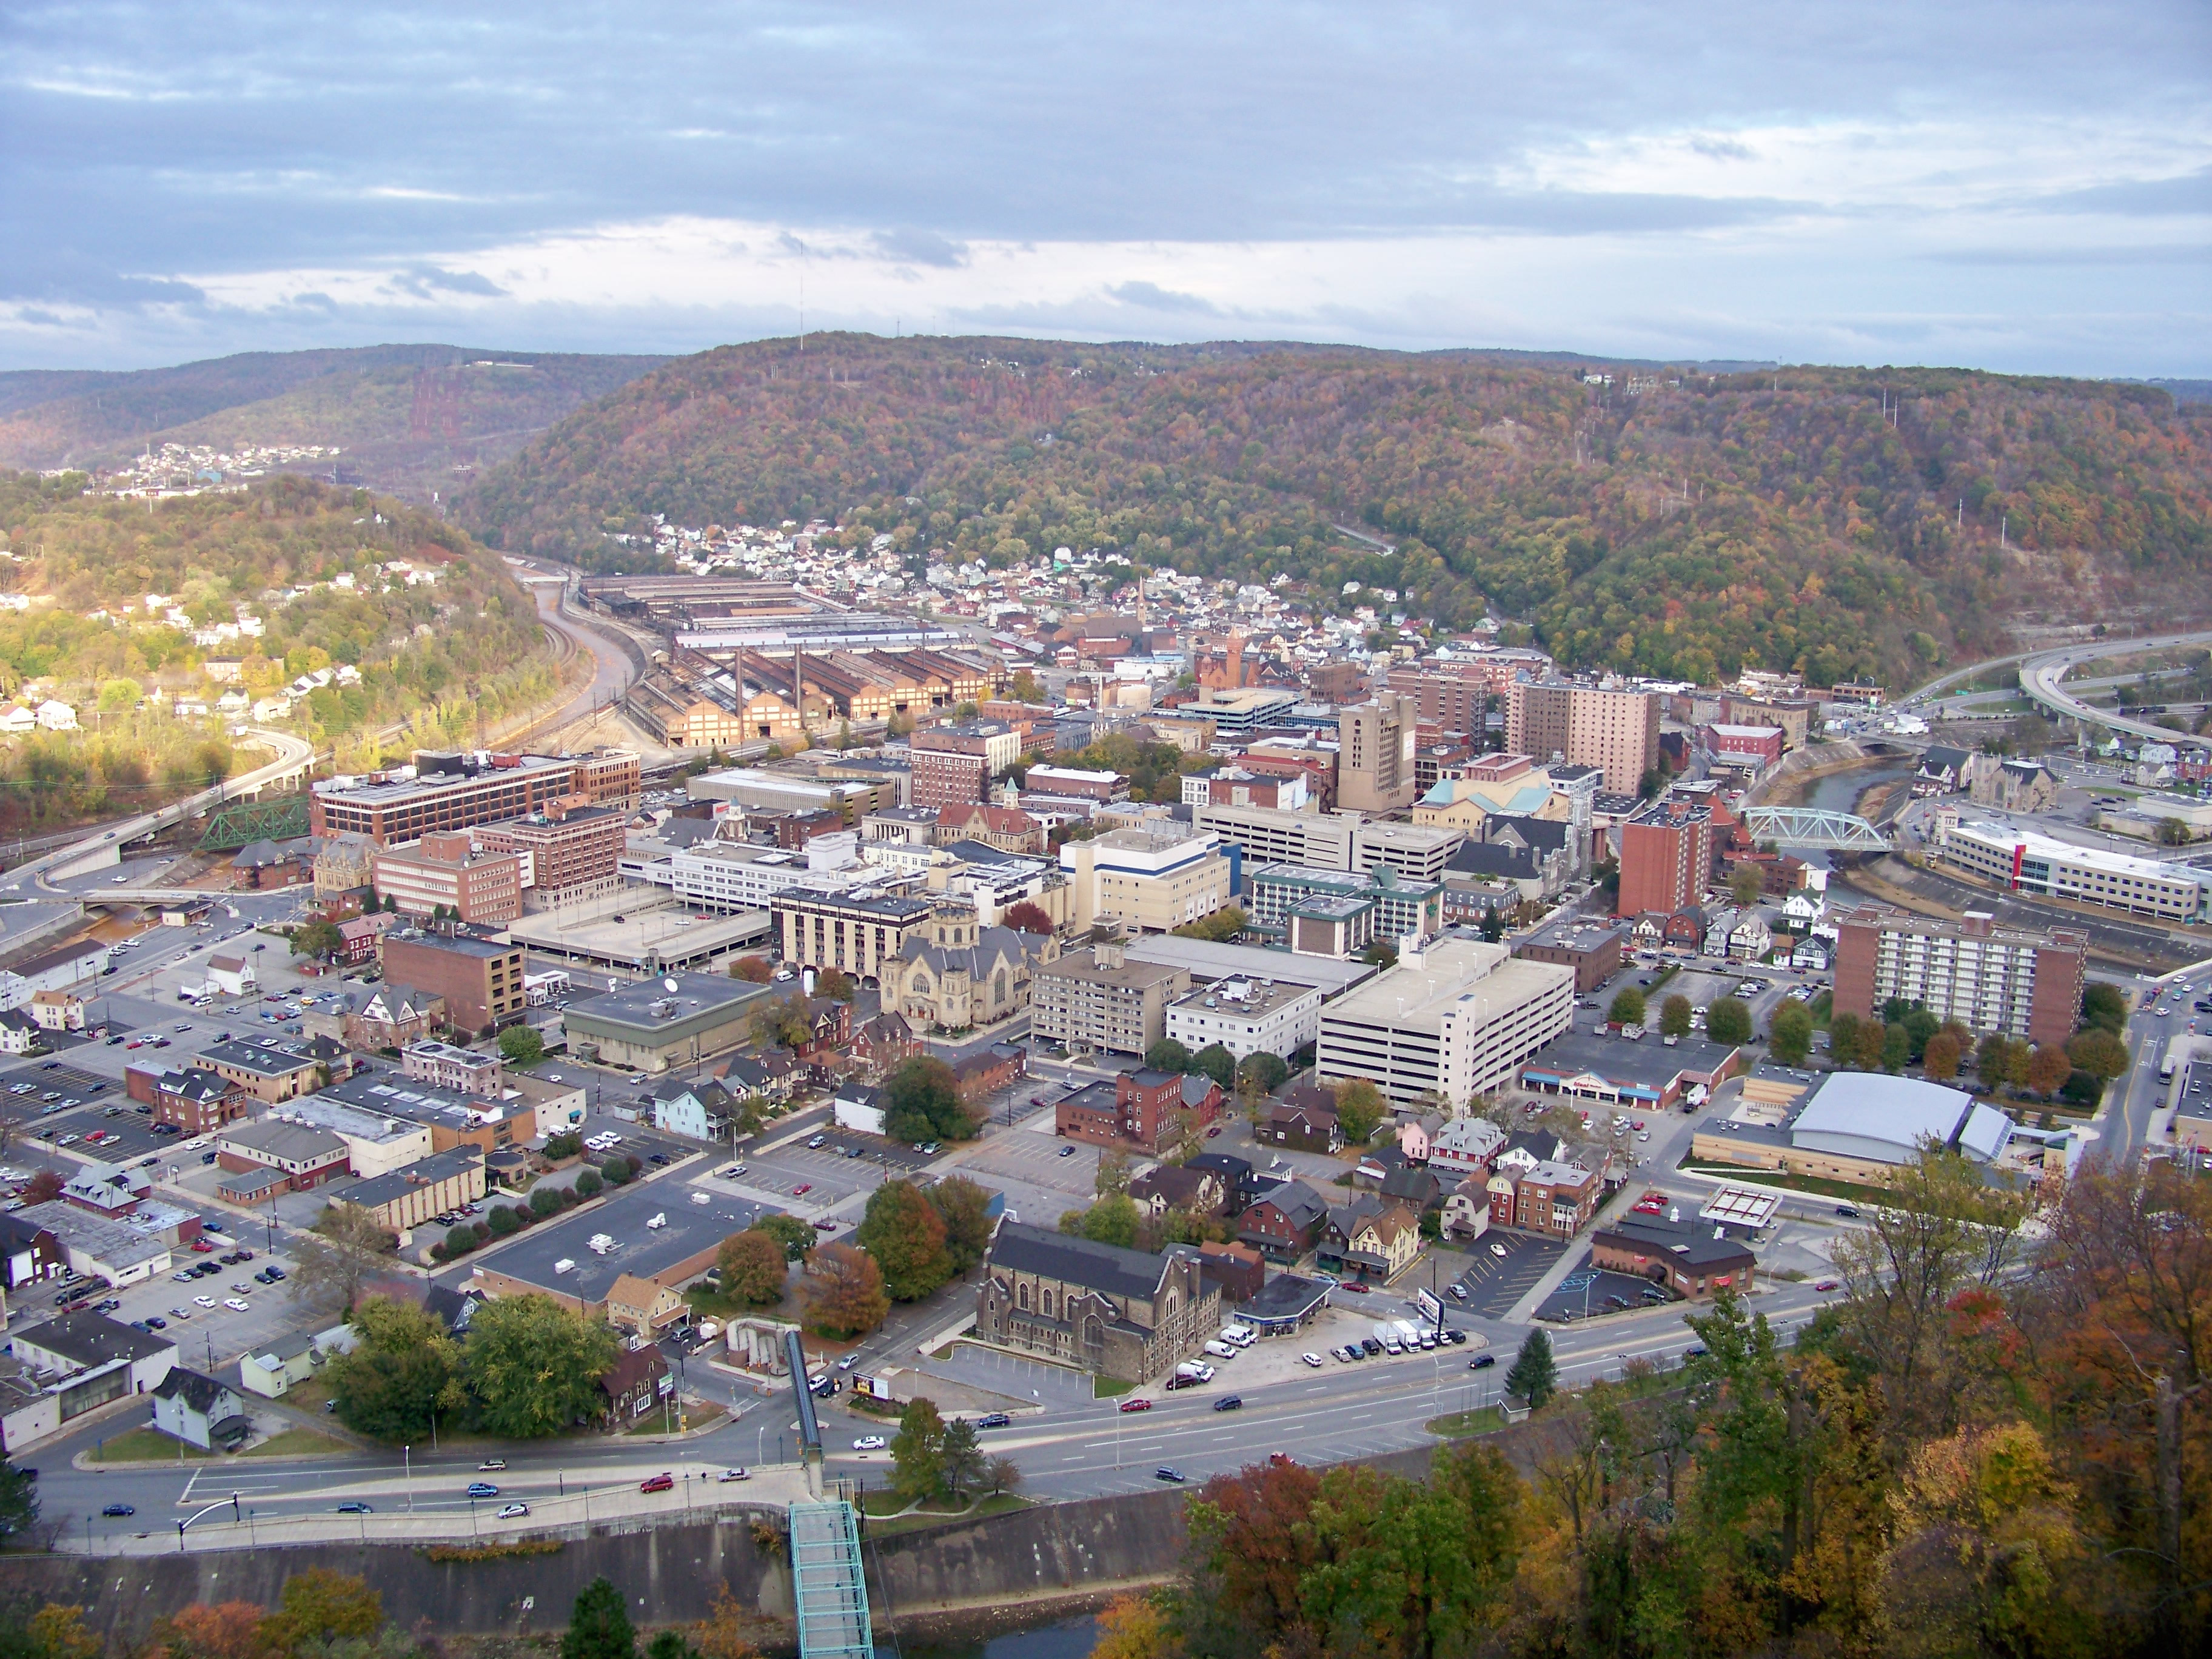 View of Johnstown from the Inclined Plane